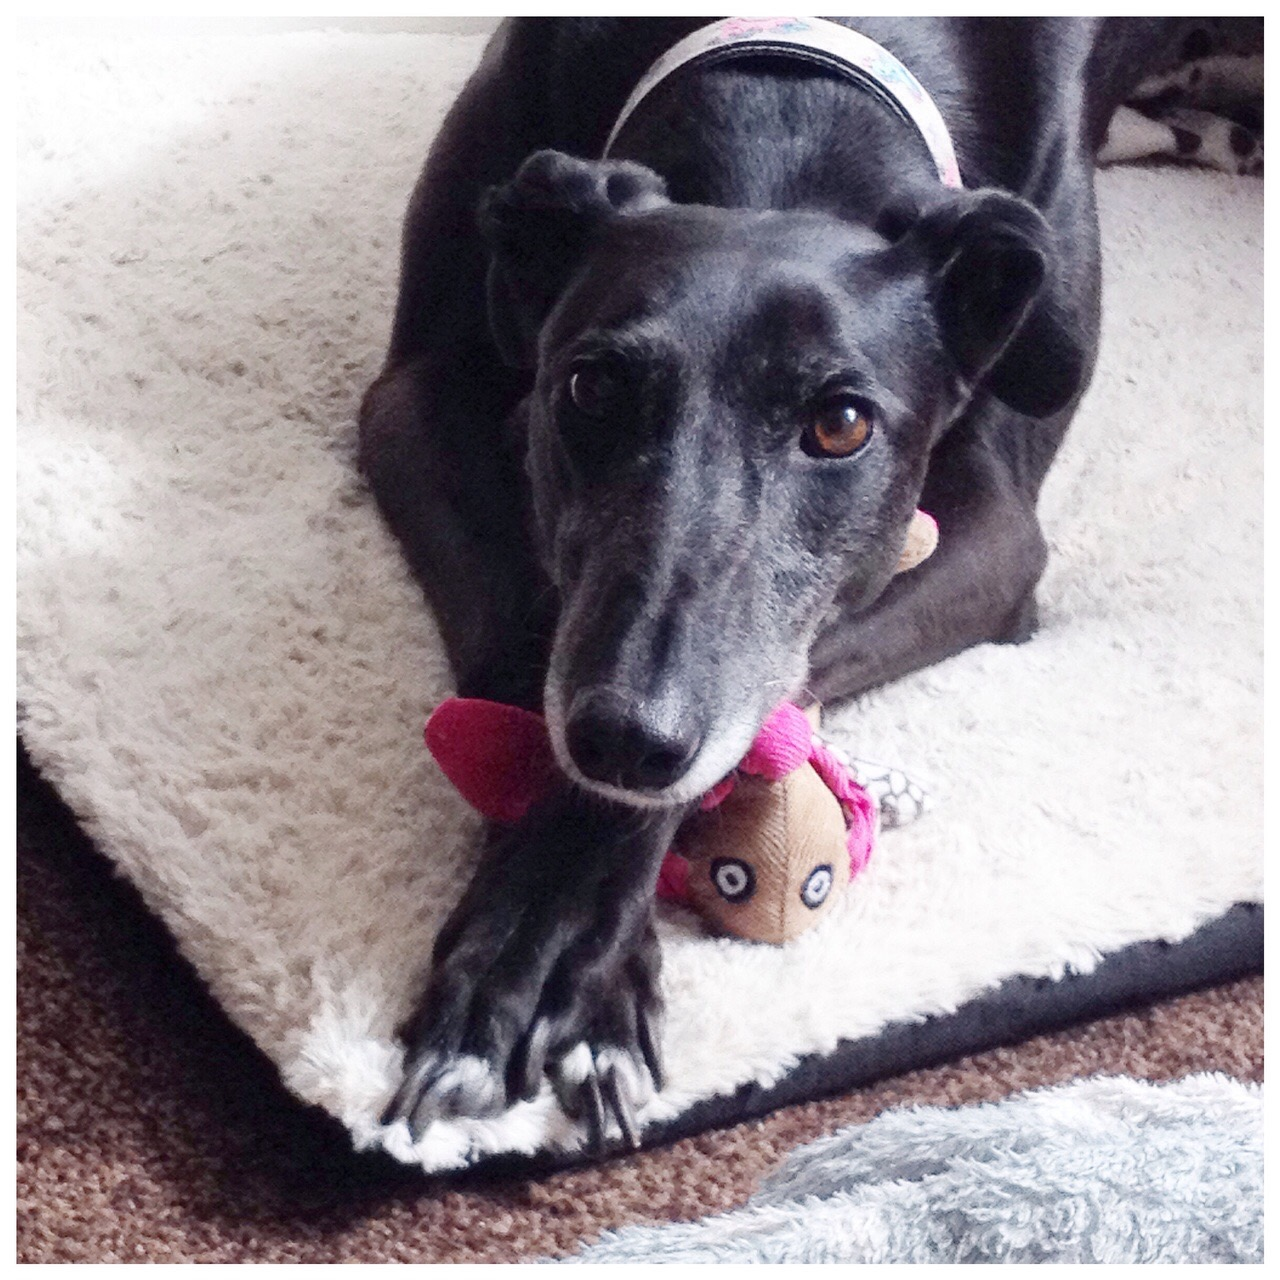 Chloe our black greyhound lying on her bed with a cuddly toy